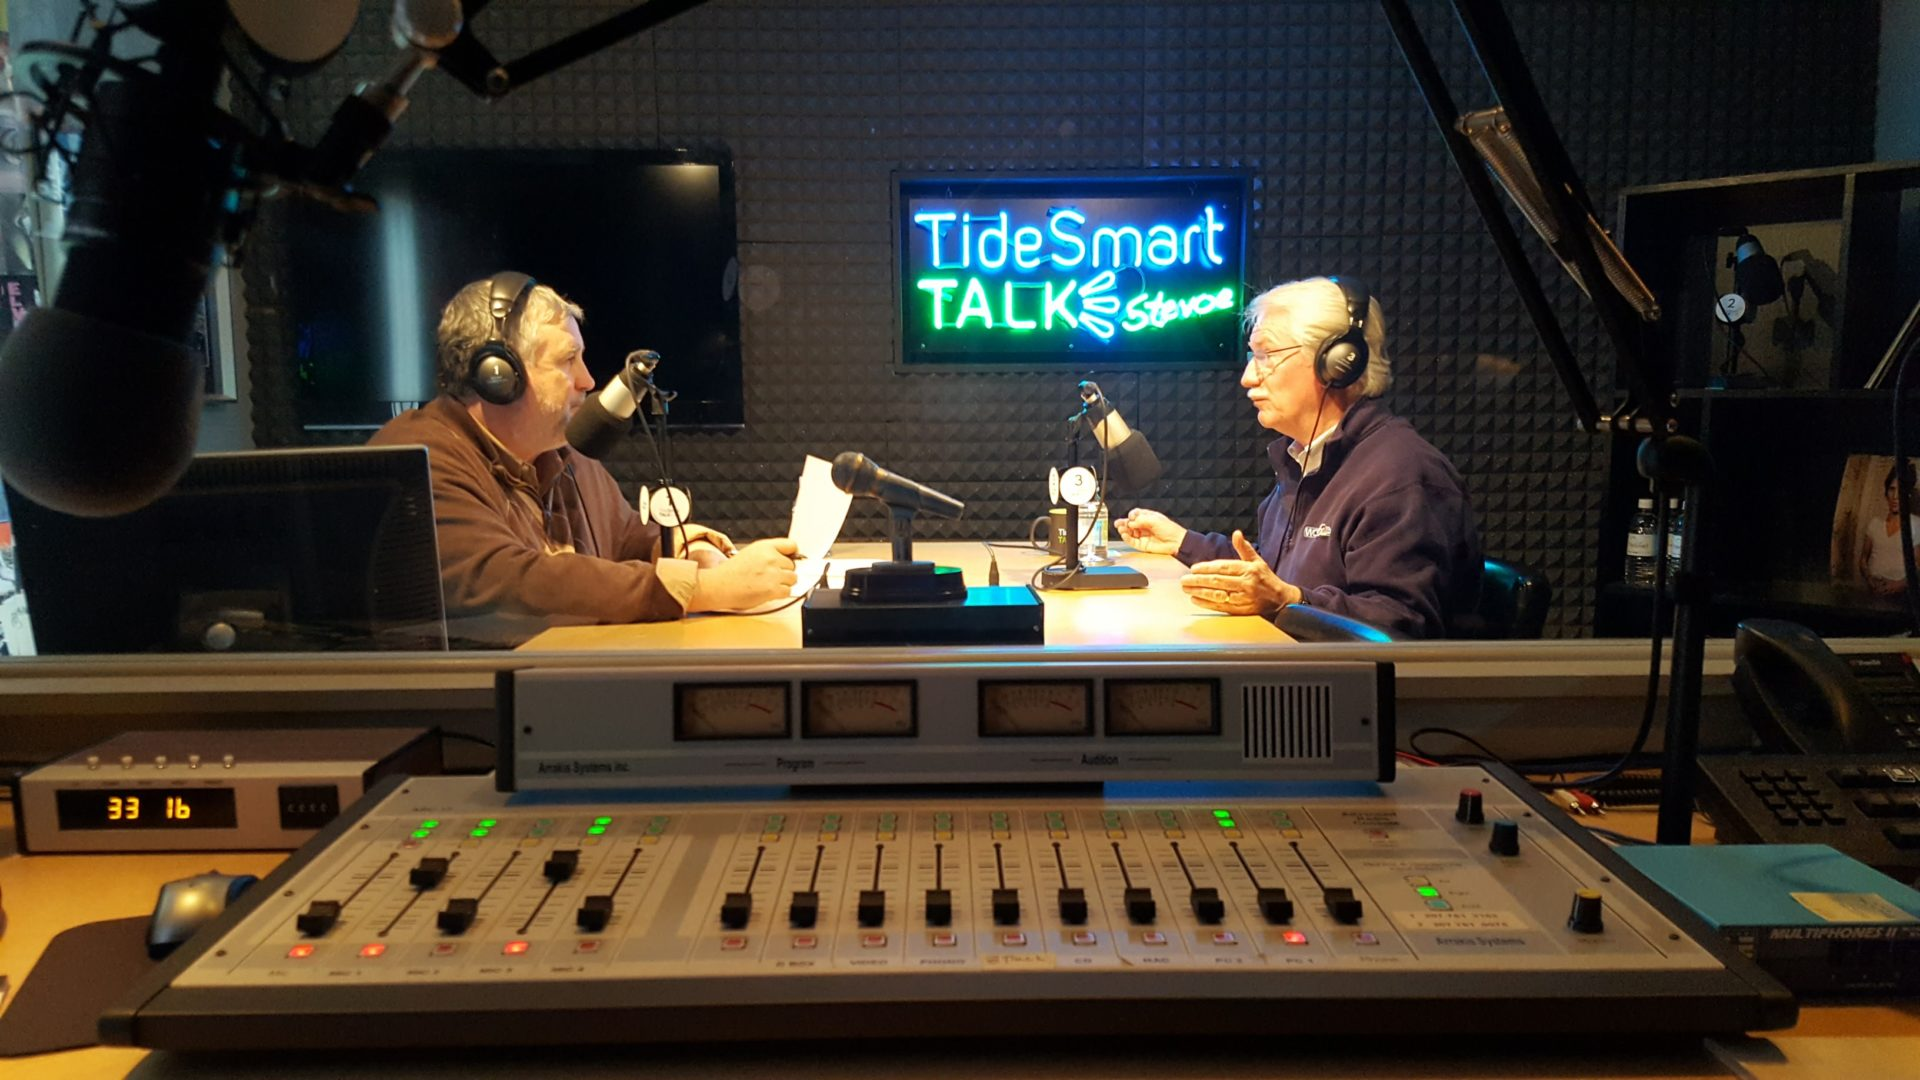 Host of TideSmart Talk with Stevoe, Steve Woods, welcomed Bill Green (at right).